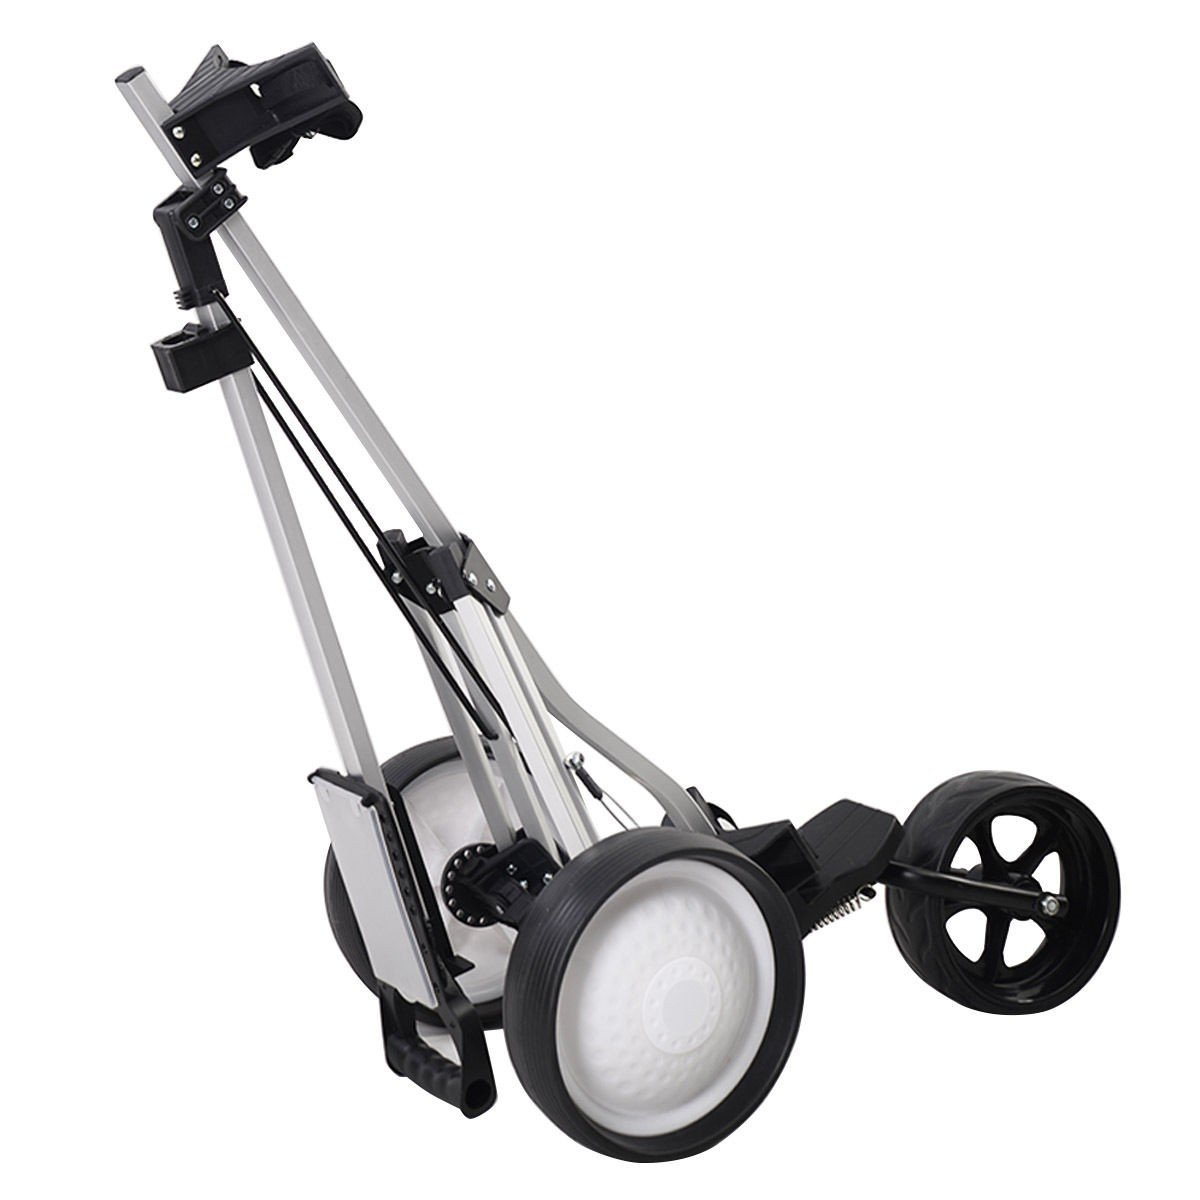 MD Group Golf Cart Push Trolley Pull Wheel Foldable Club Swivel Holder Lightweight Aluminum by MD Group (Image #4)